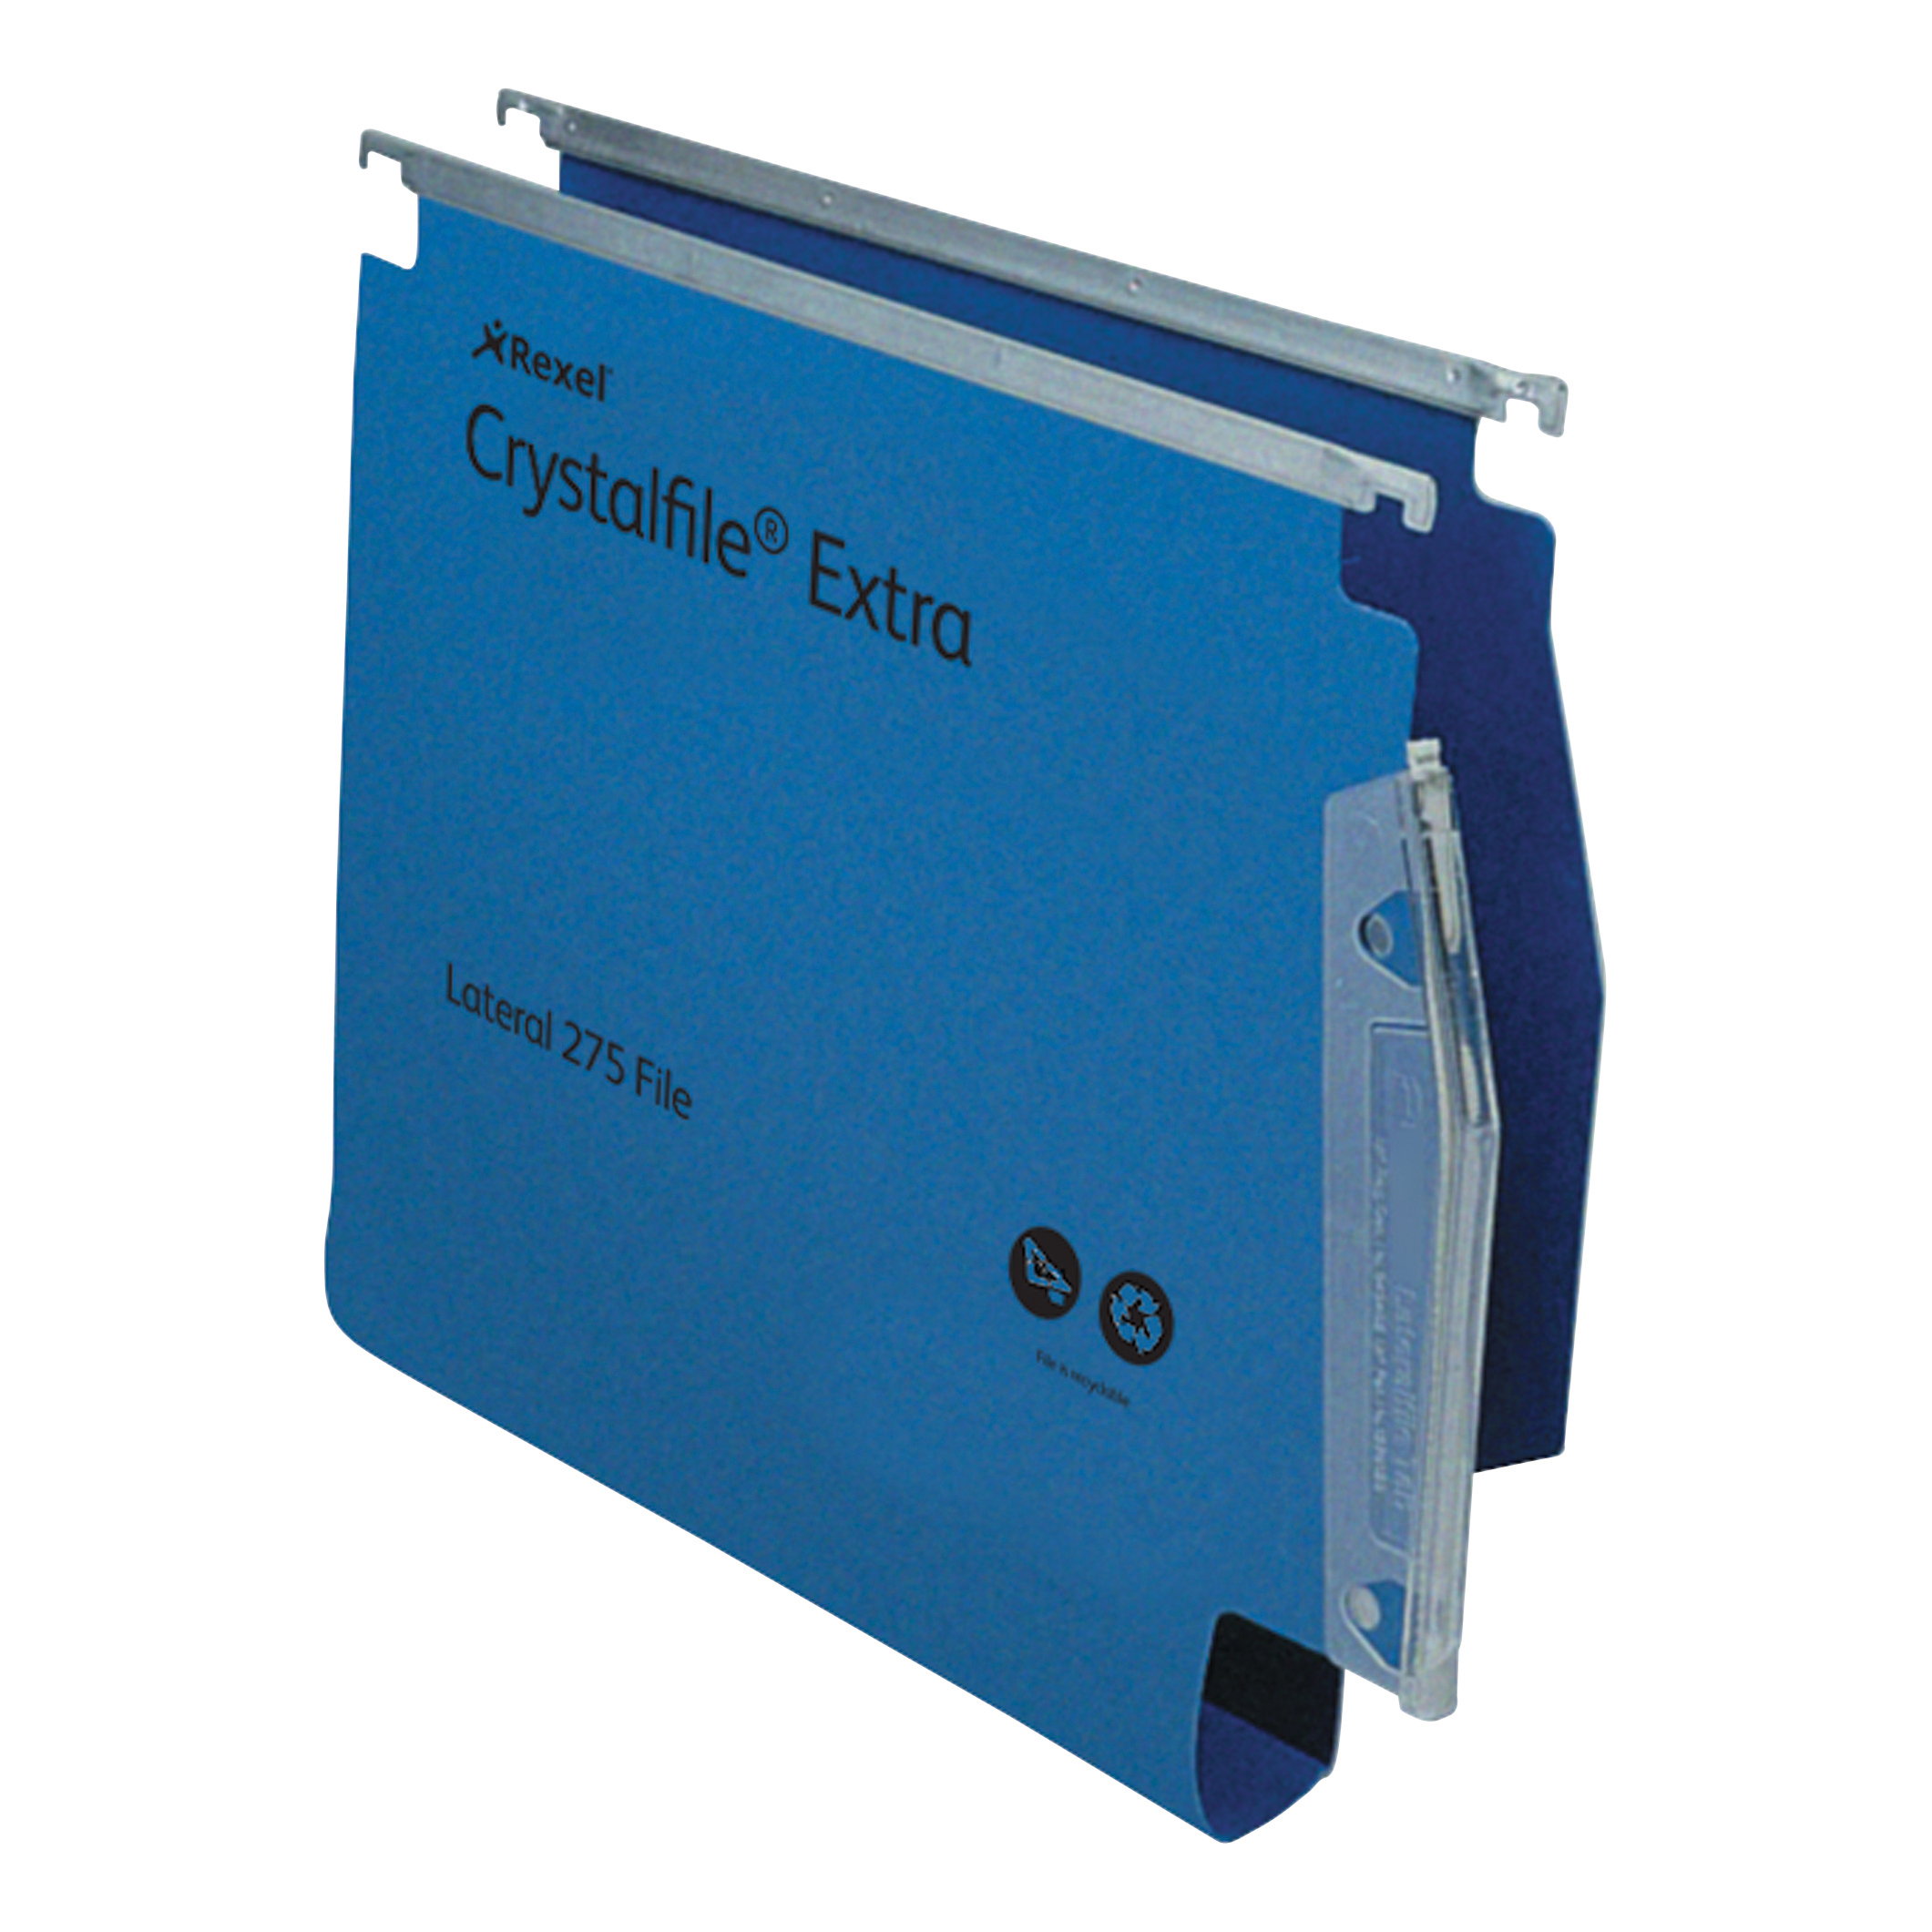 Rexel Crystalfile Extra Lateral File Polypropylene W275mm 30mm Base Blue Ref 70642 [Pack 25]